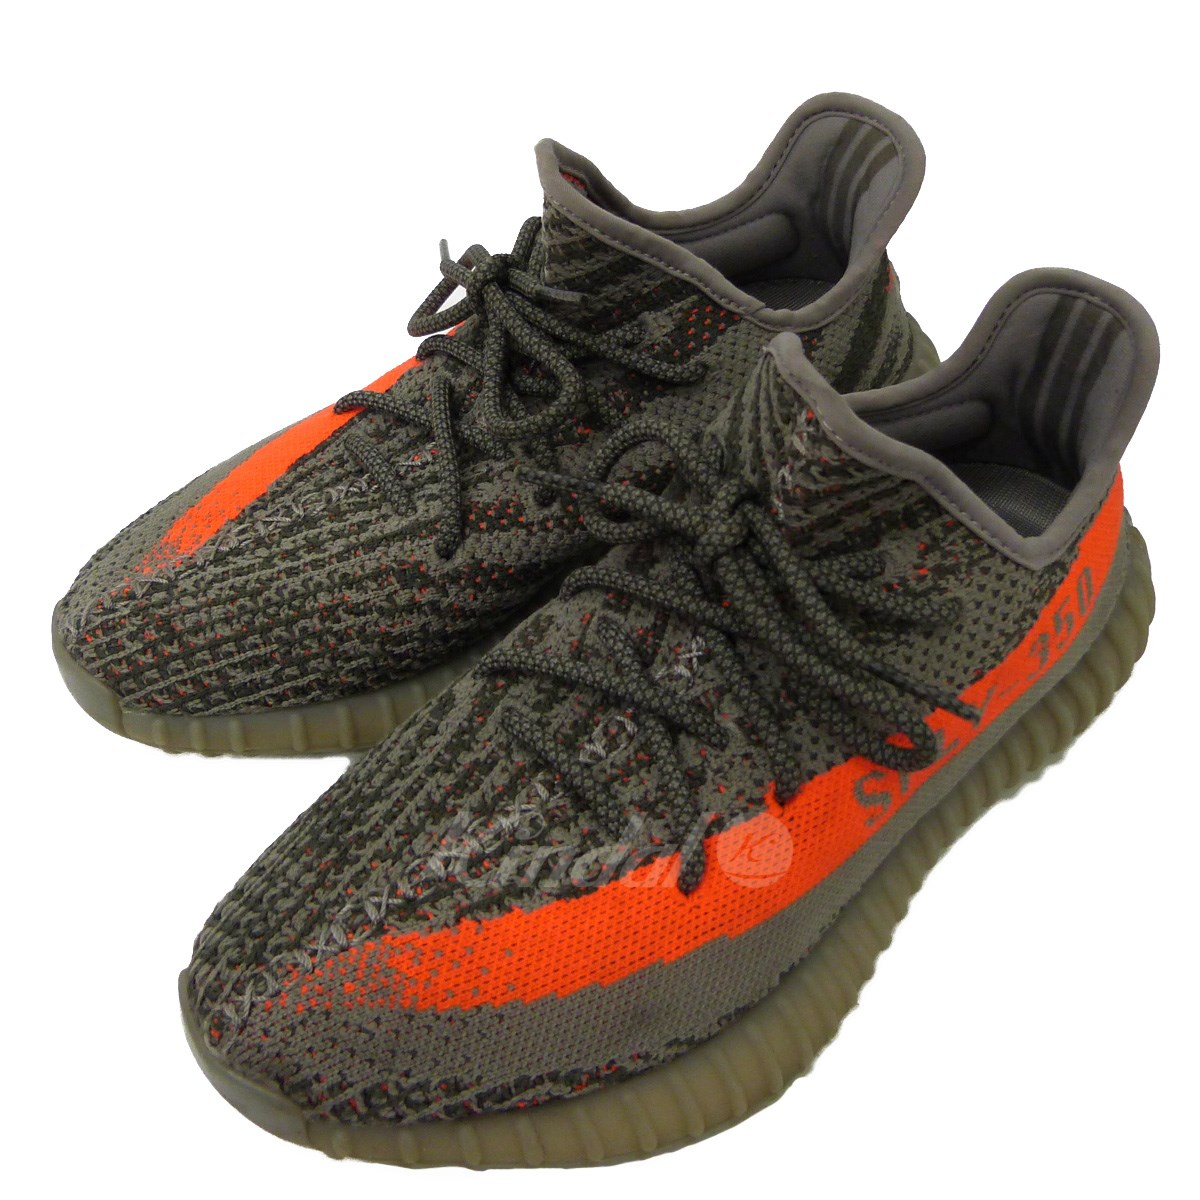 【中古】adidas originals by Kanye West 「YEEZY BOOST 350 V2」スニーカー 【送料無料】 【153384】 【KIND1551】